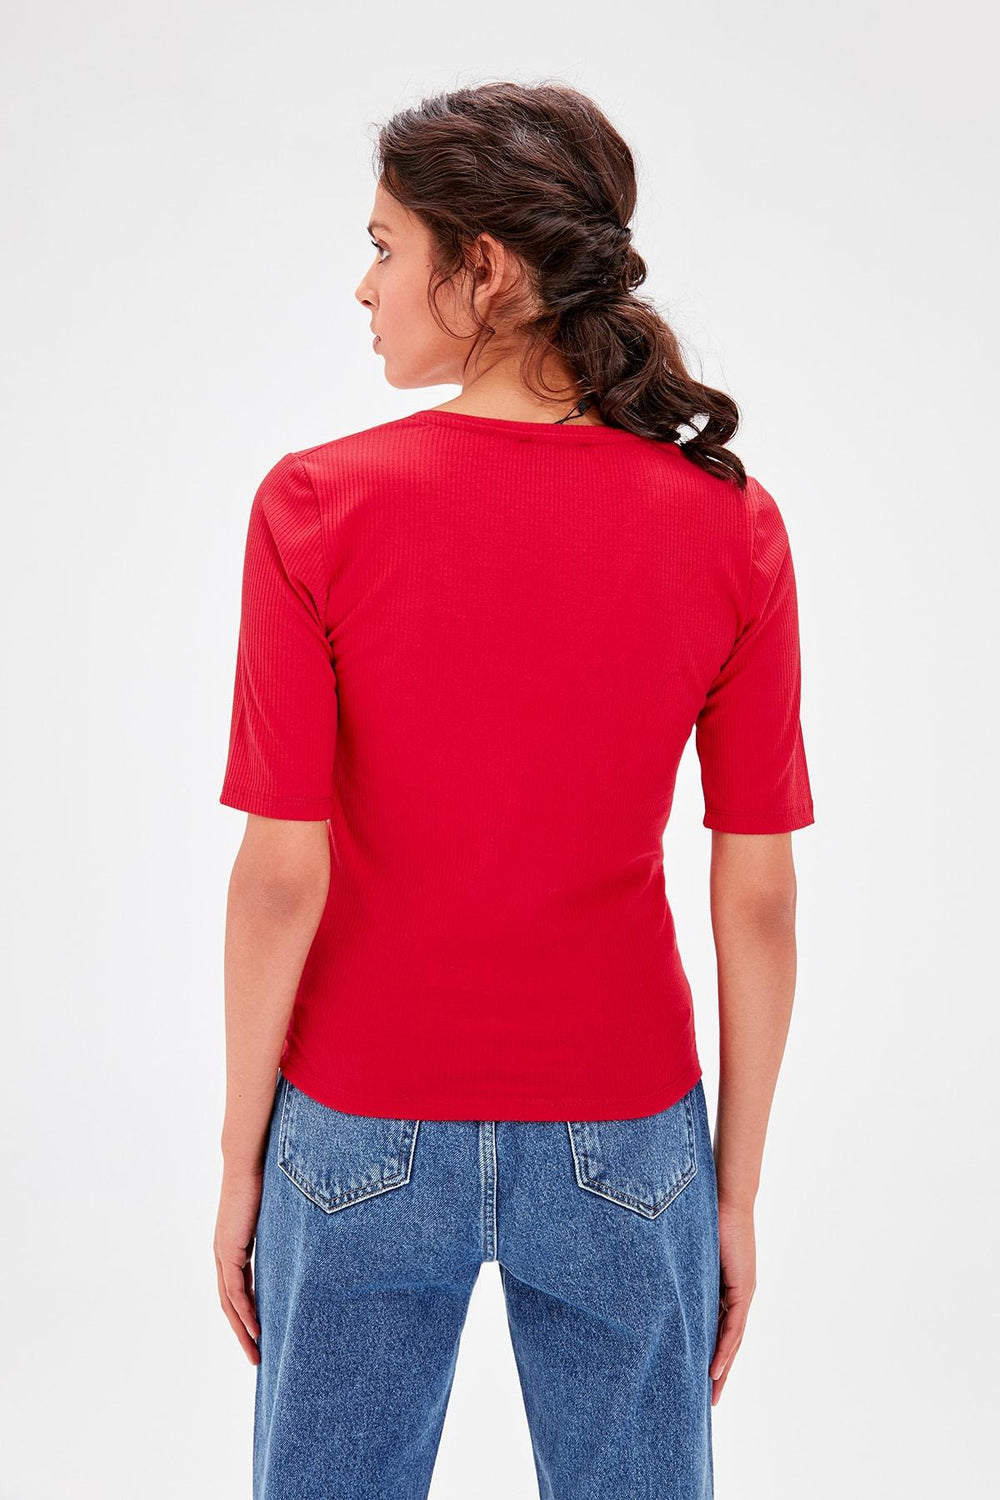 Miss Zut Miss Zut Red V-Neck Ribbed Knitted Blouse Miss Zut &CO